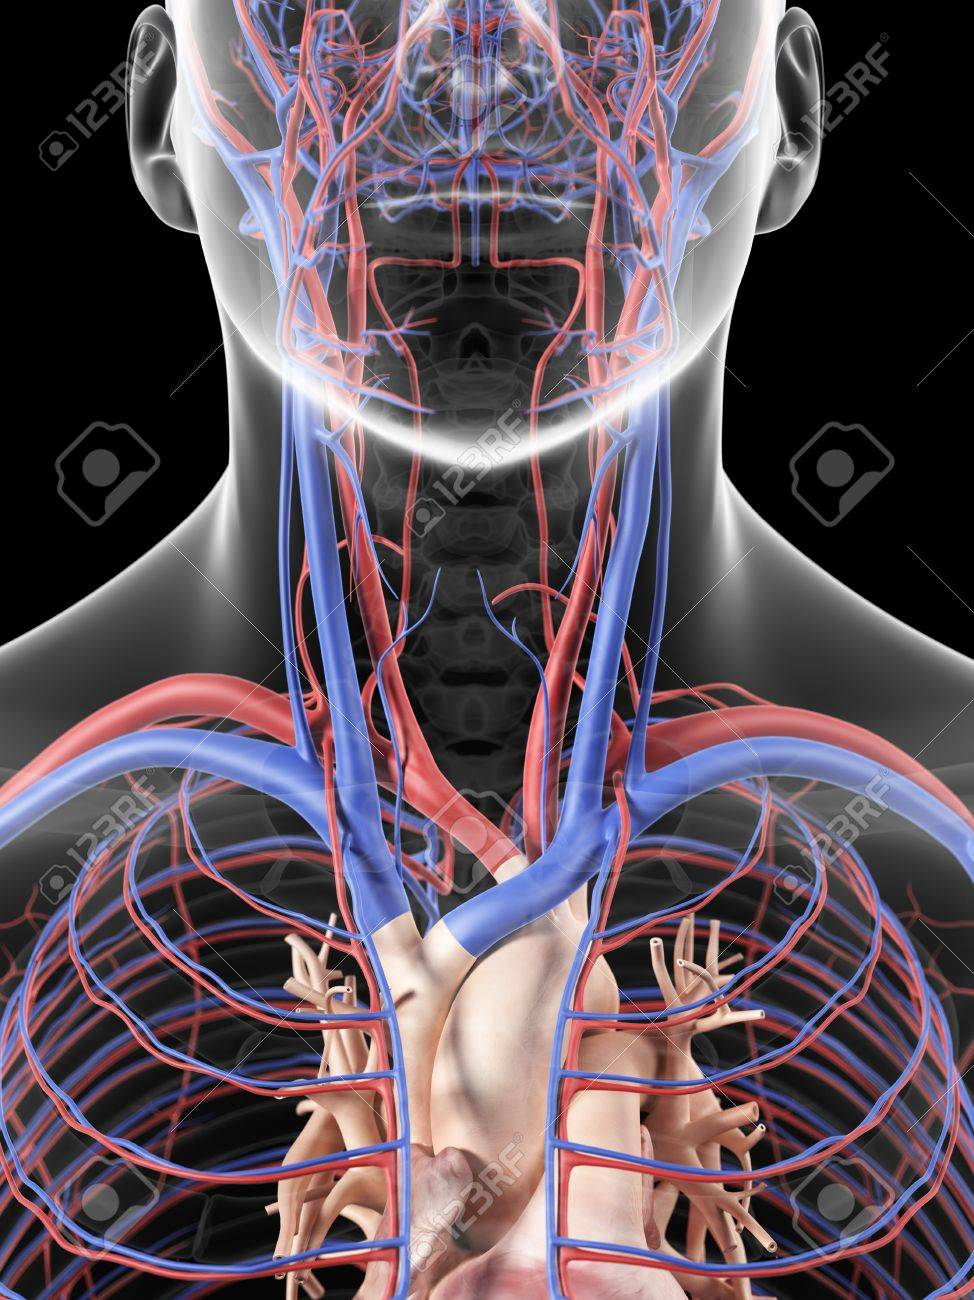 Blood Vessels In Neck, Artwork Stock Photo, Picture And Royalty Free ...